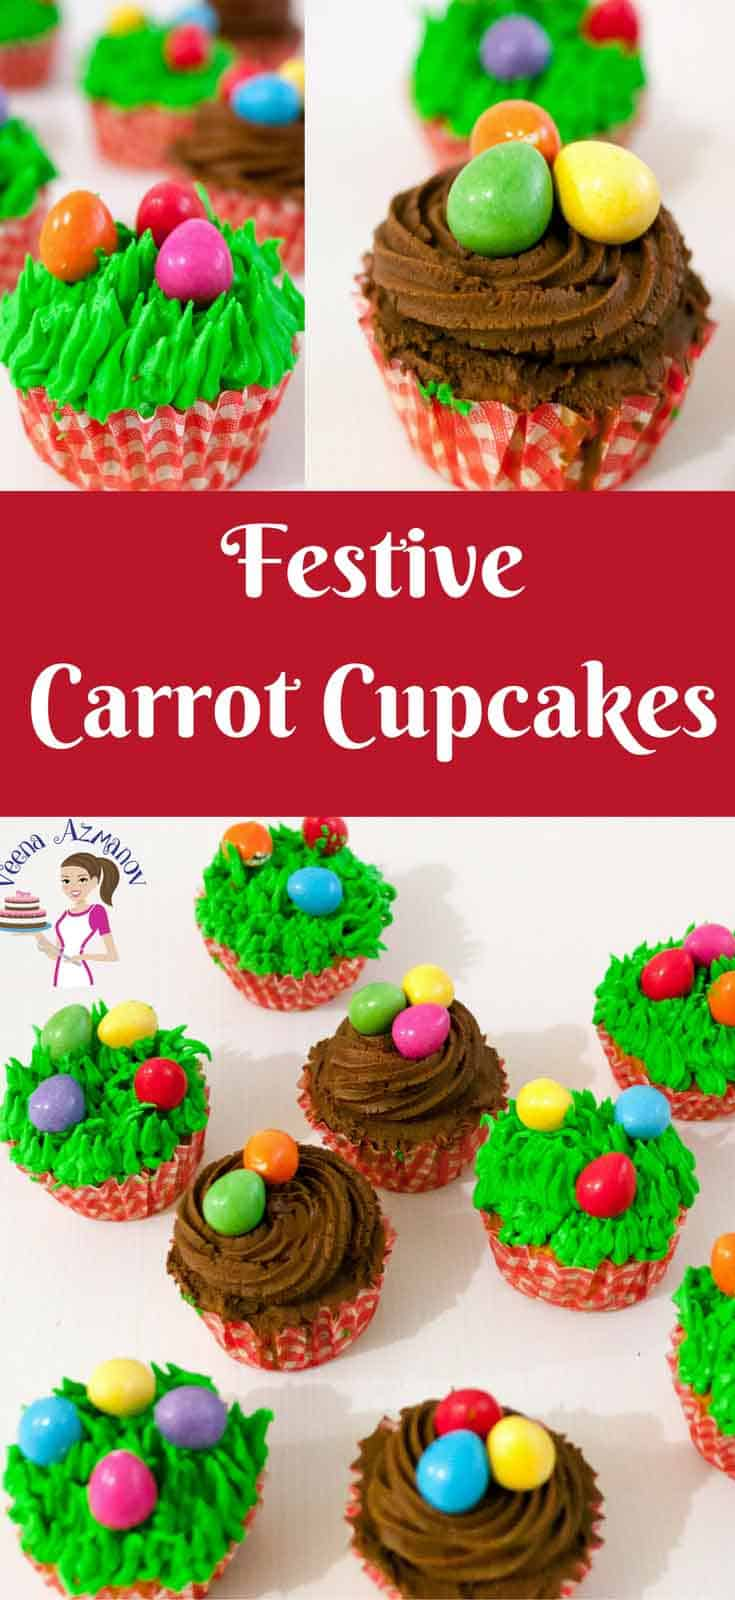 Easy and incredibly super moist these carrot cupcakes topped with luscious sweetfrosting will be your favorite from now on. I made them festive with these cute Easter eggs but these are delicious all year round.